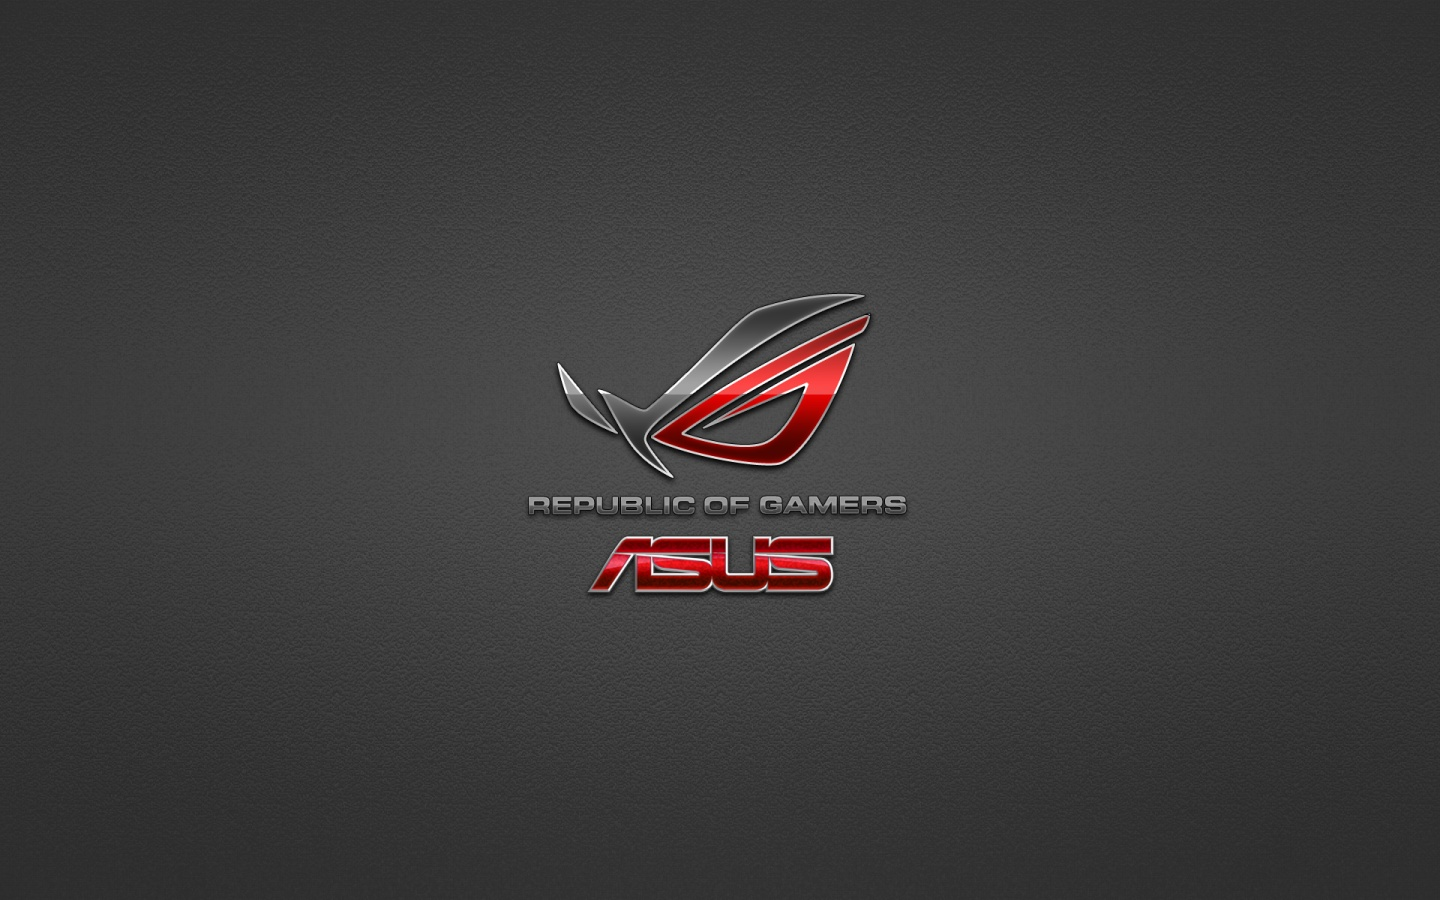 Asus Rog Light Wallpapers - 1440x900 - 351529